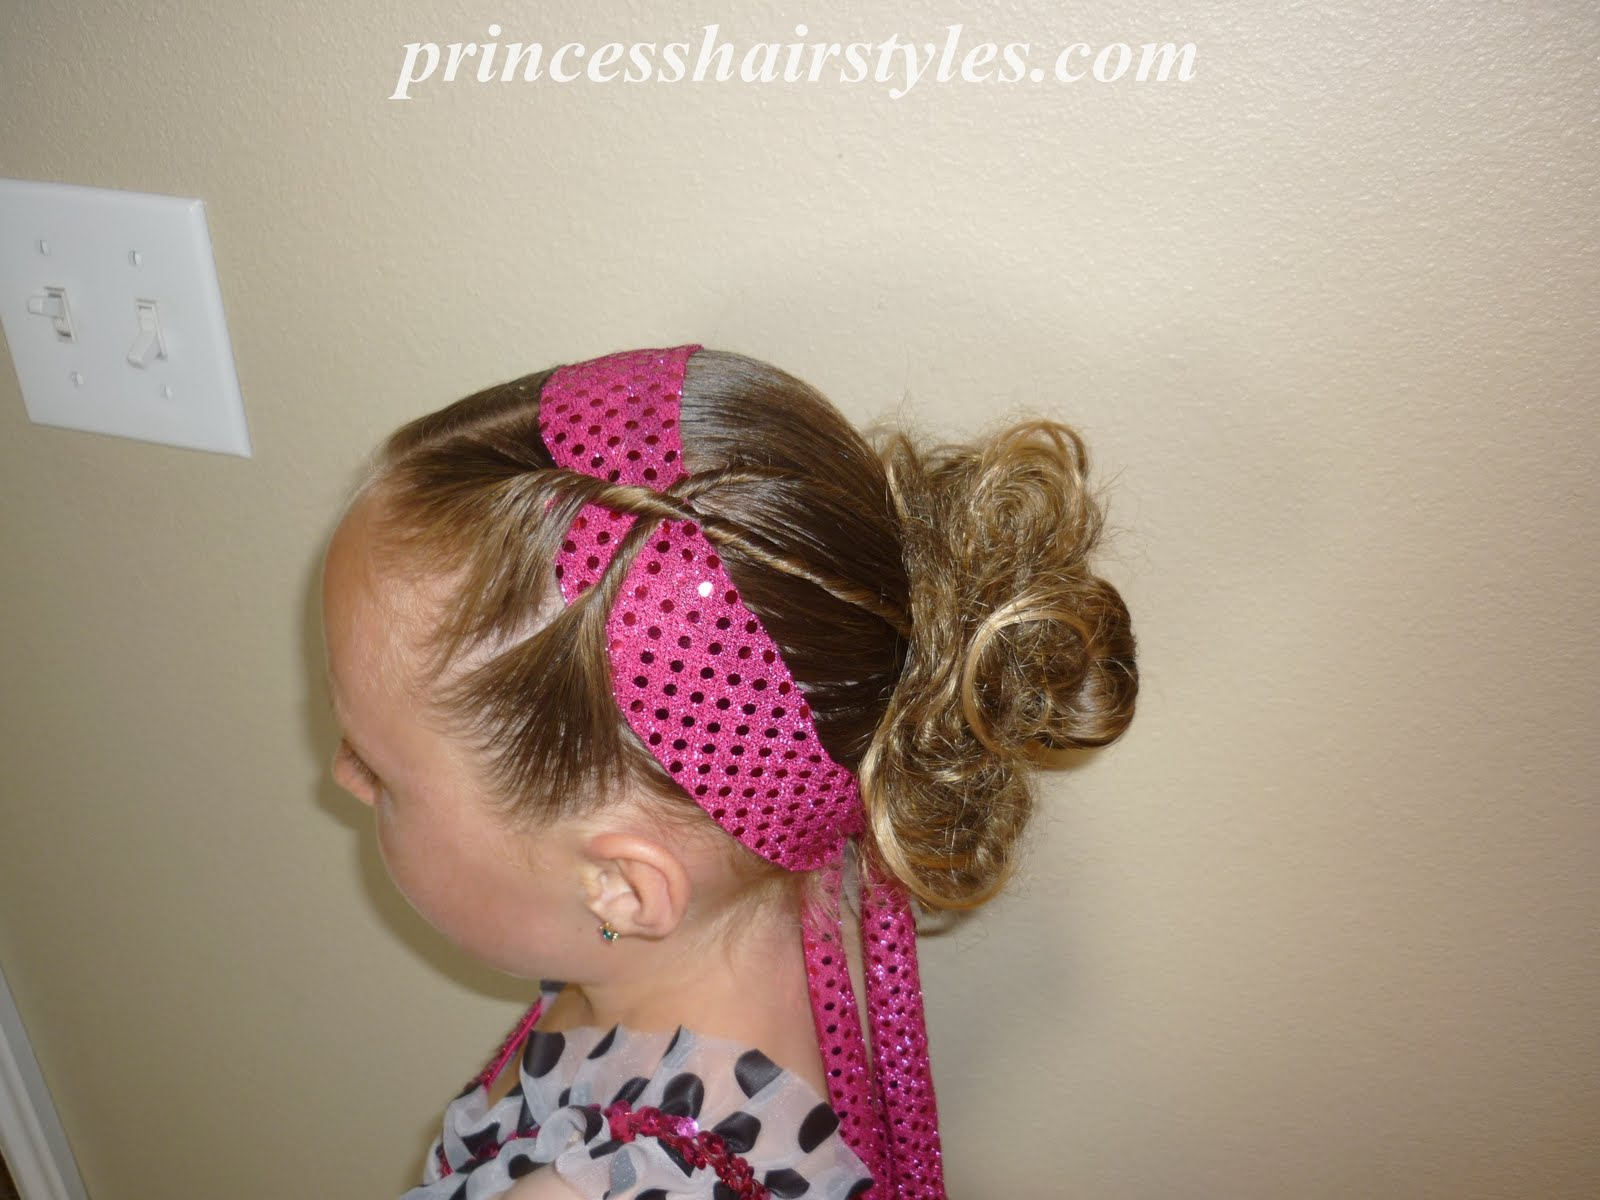 hairstyles for dance competition, recital | hairstyles for girls